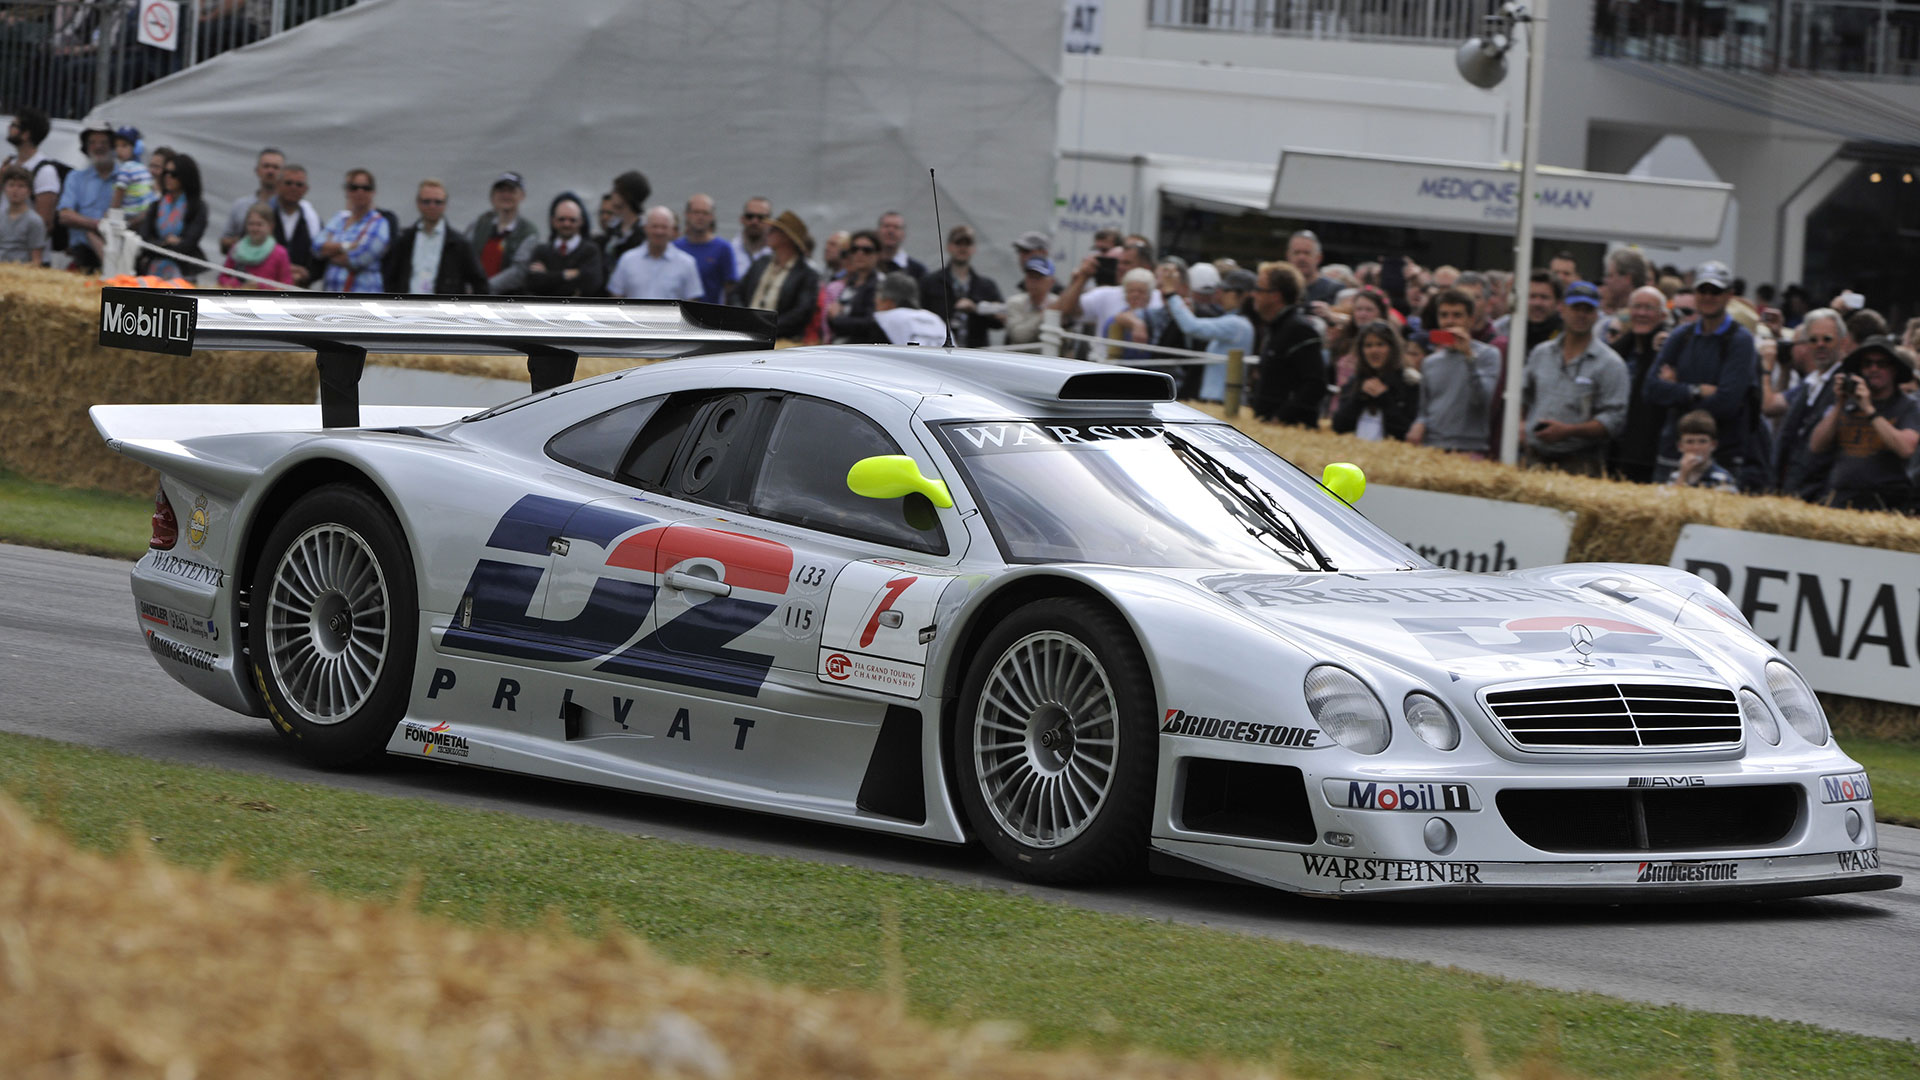 Mercedes-Benz CLK GTR: 3.8 seconds